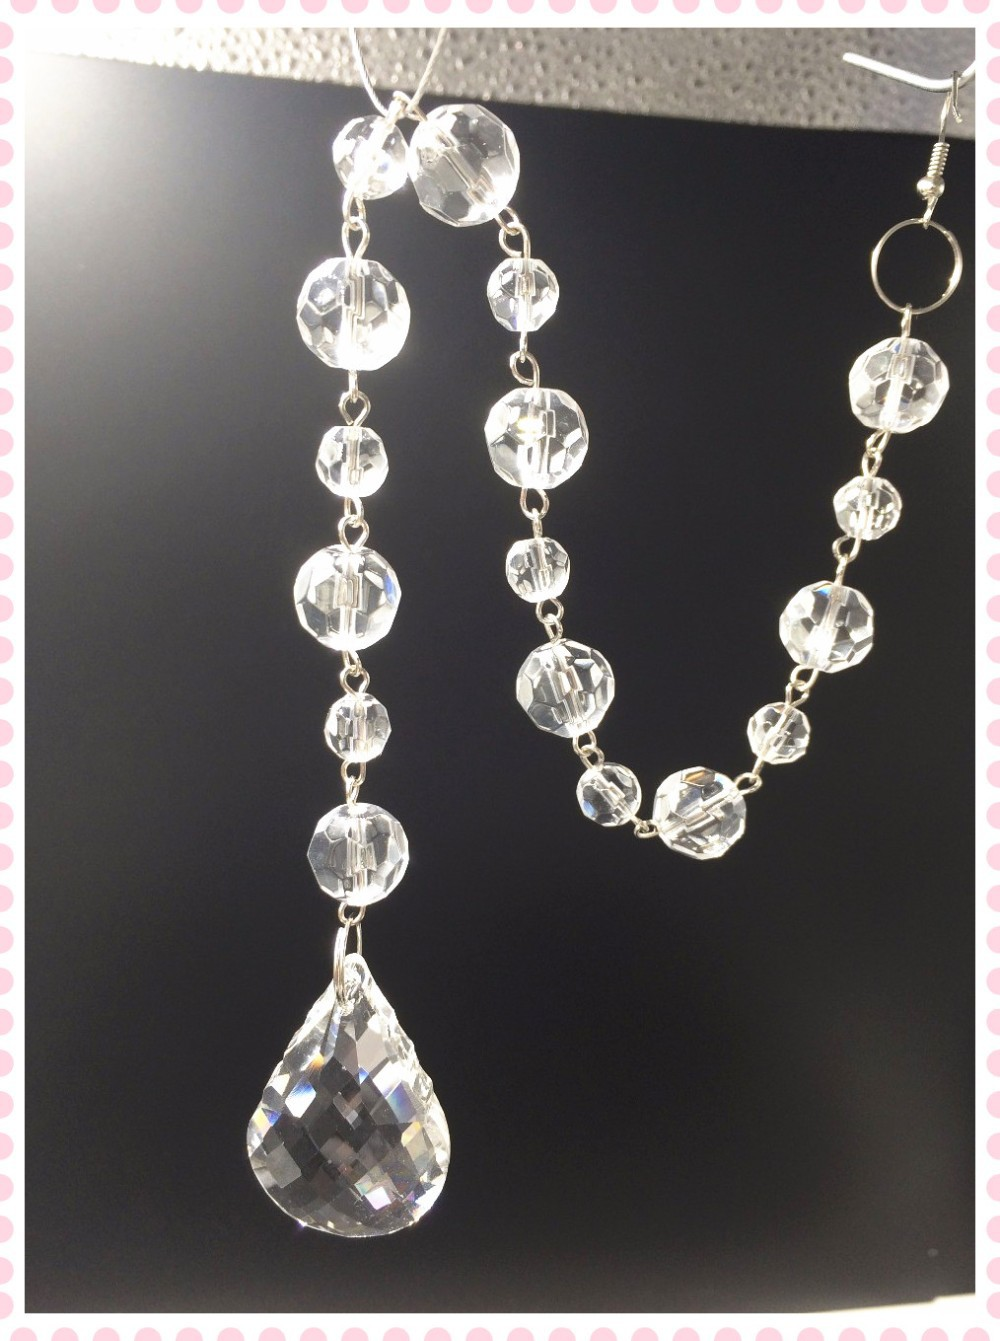 Crystal Ball Chandelier Parts Roselawnlutheran 180chains 30cm Faceted Strand Garland 38mm Pendant